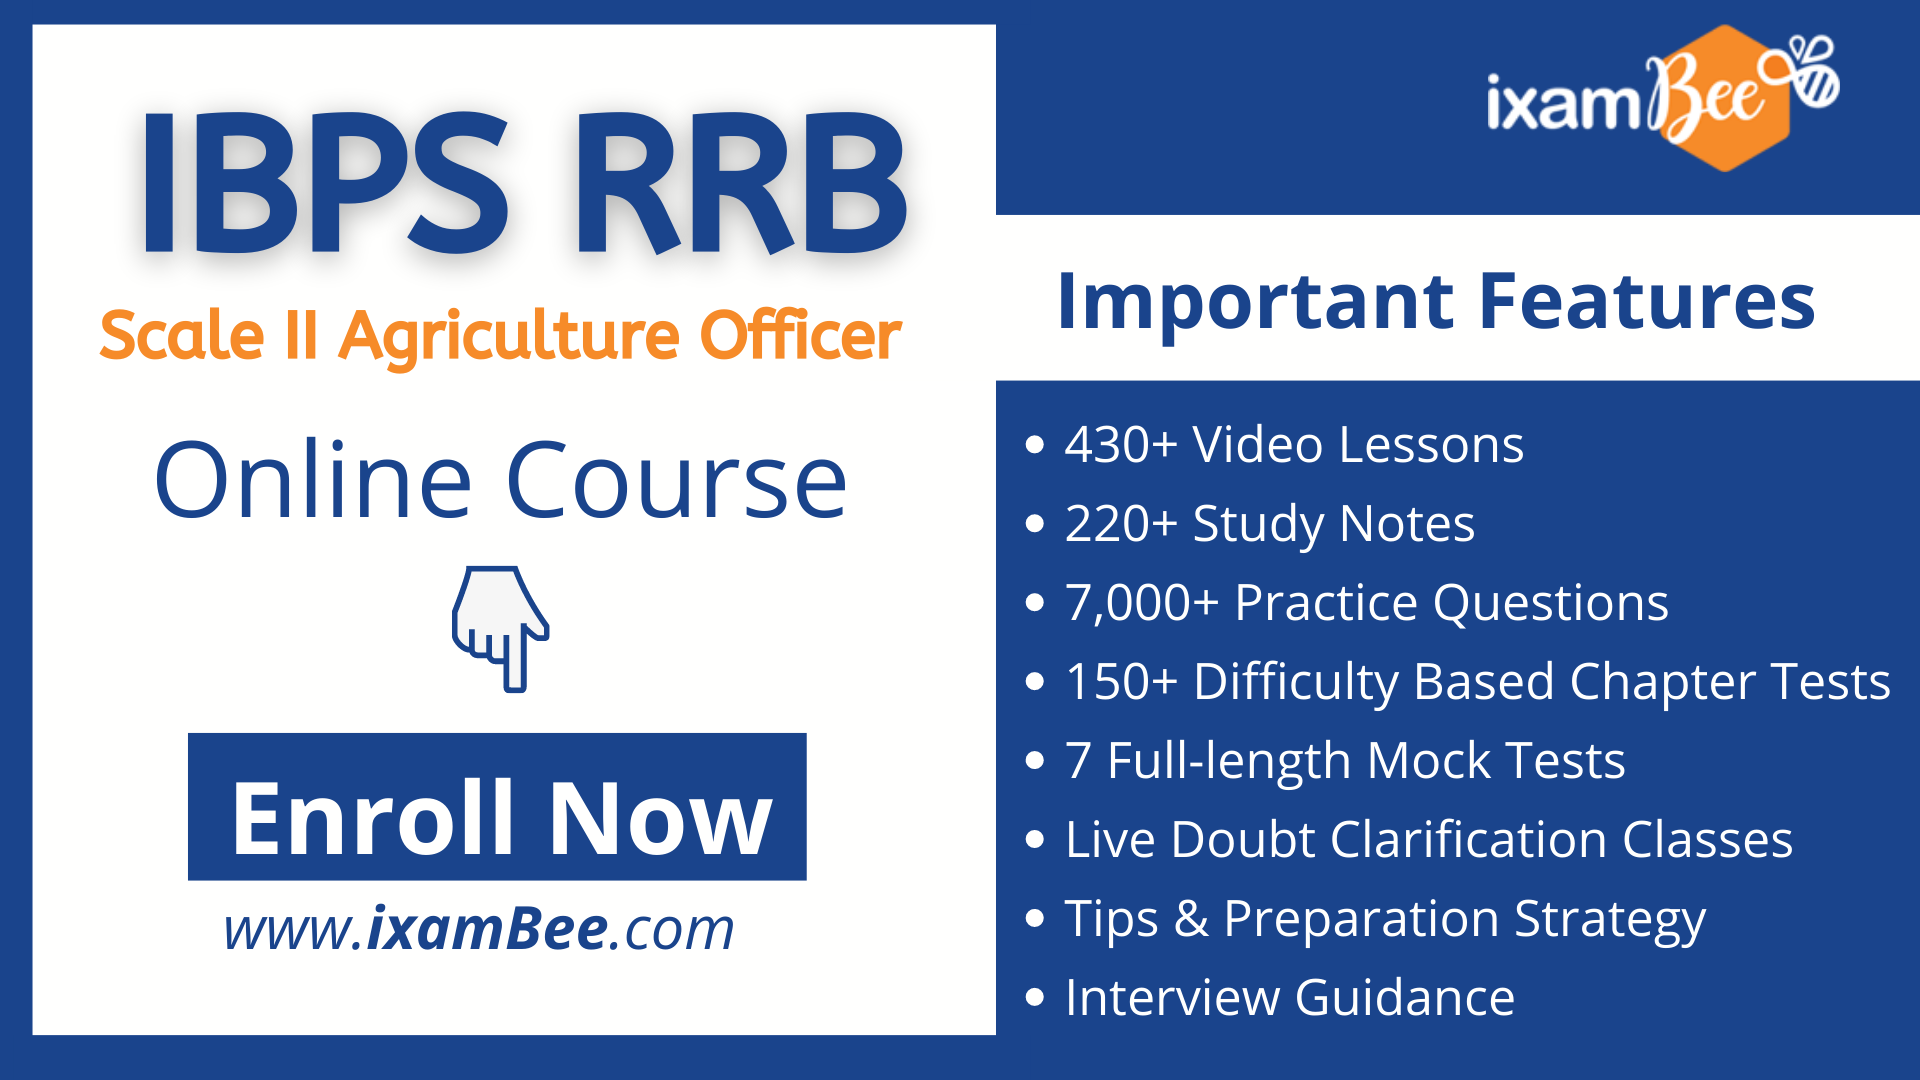 ibps rrb scale 2 agriculture online course